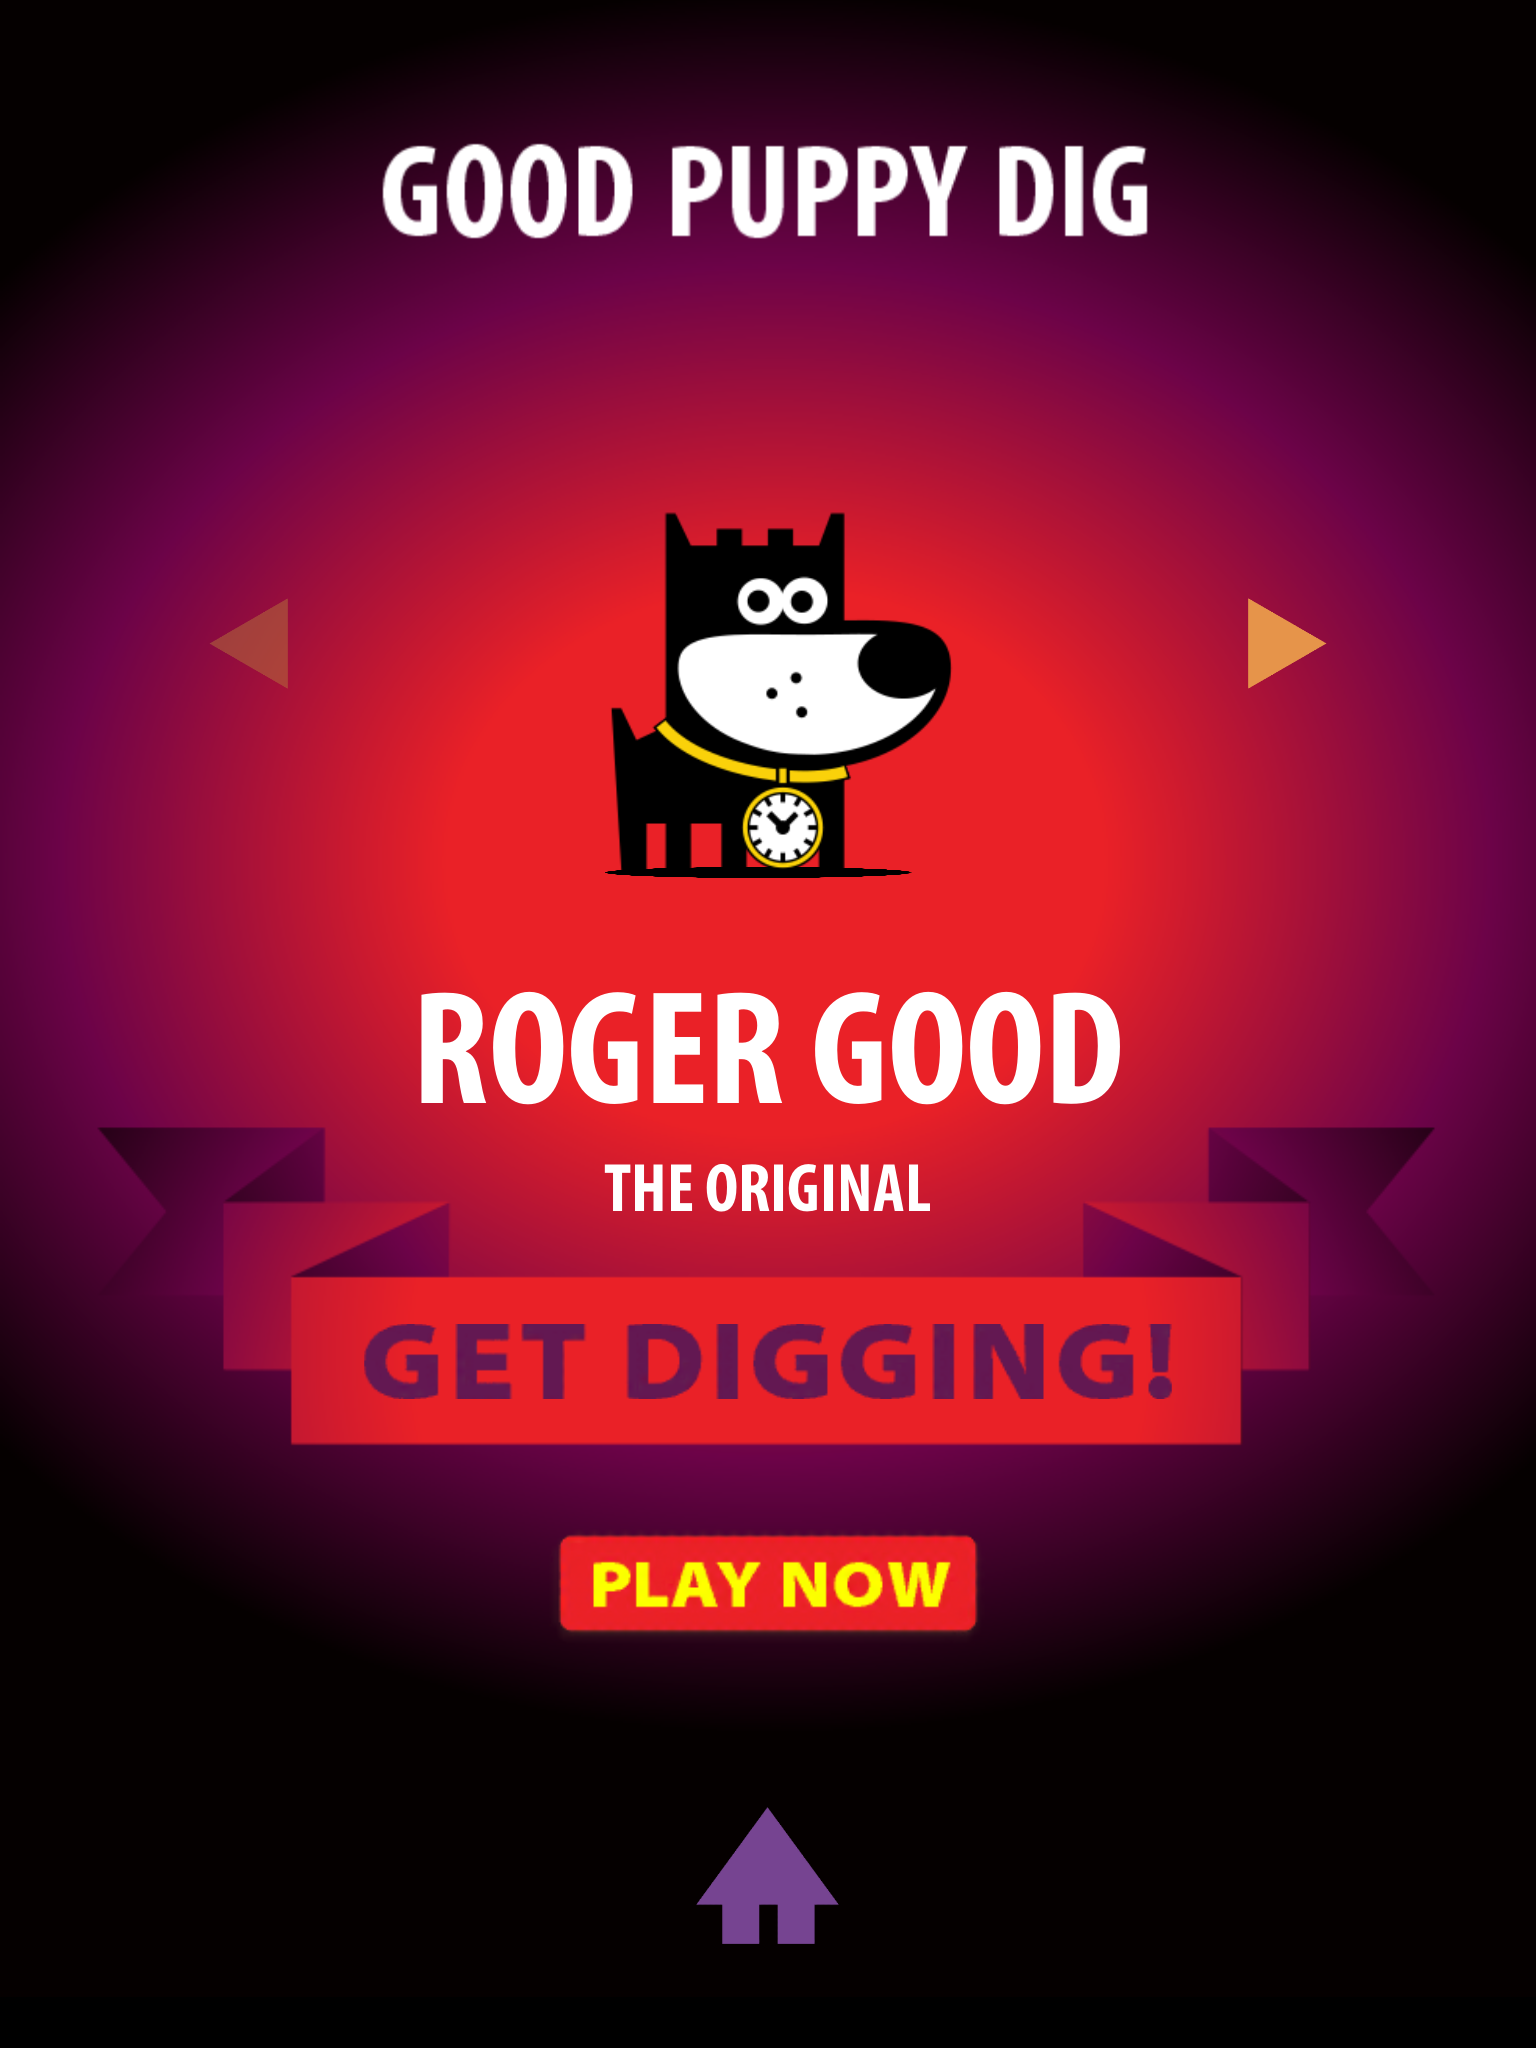 GOOD-PUPPY-DIG-Infinite-Runner-Fast-Retro-Arcade-Game-2.png